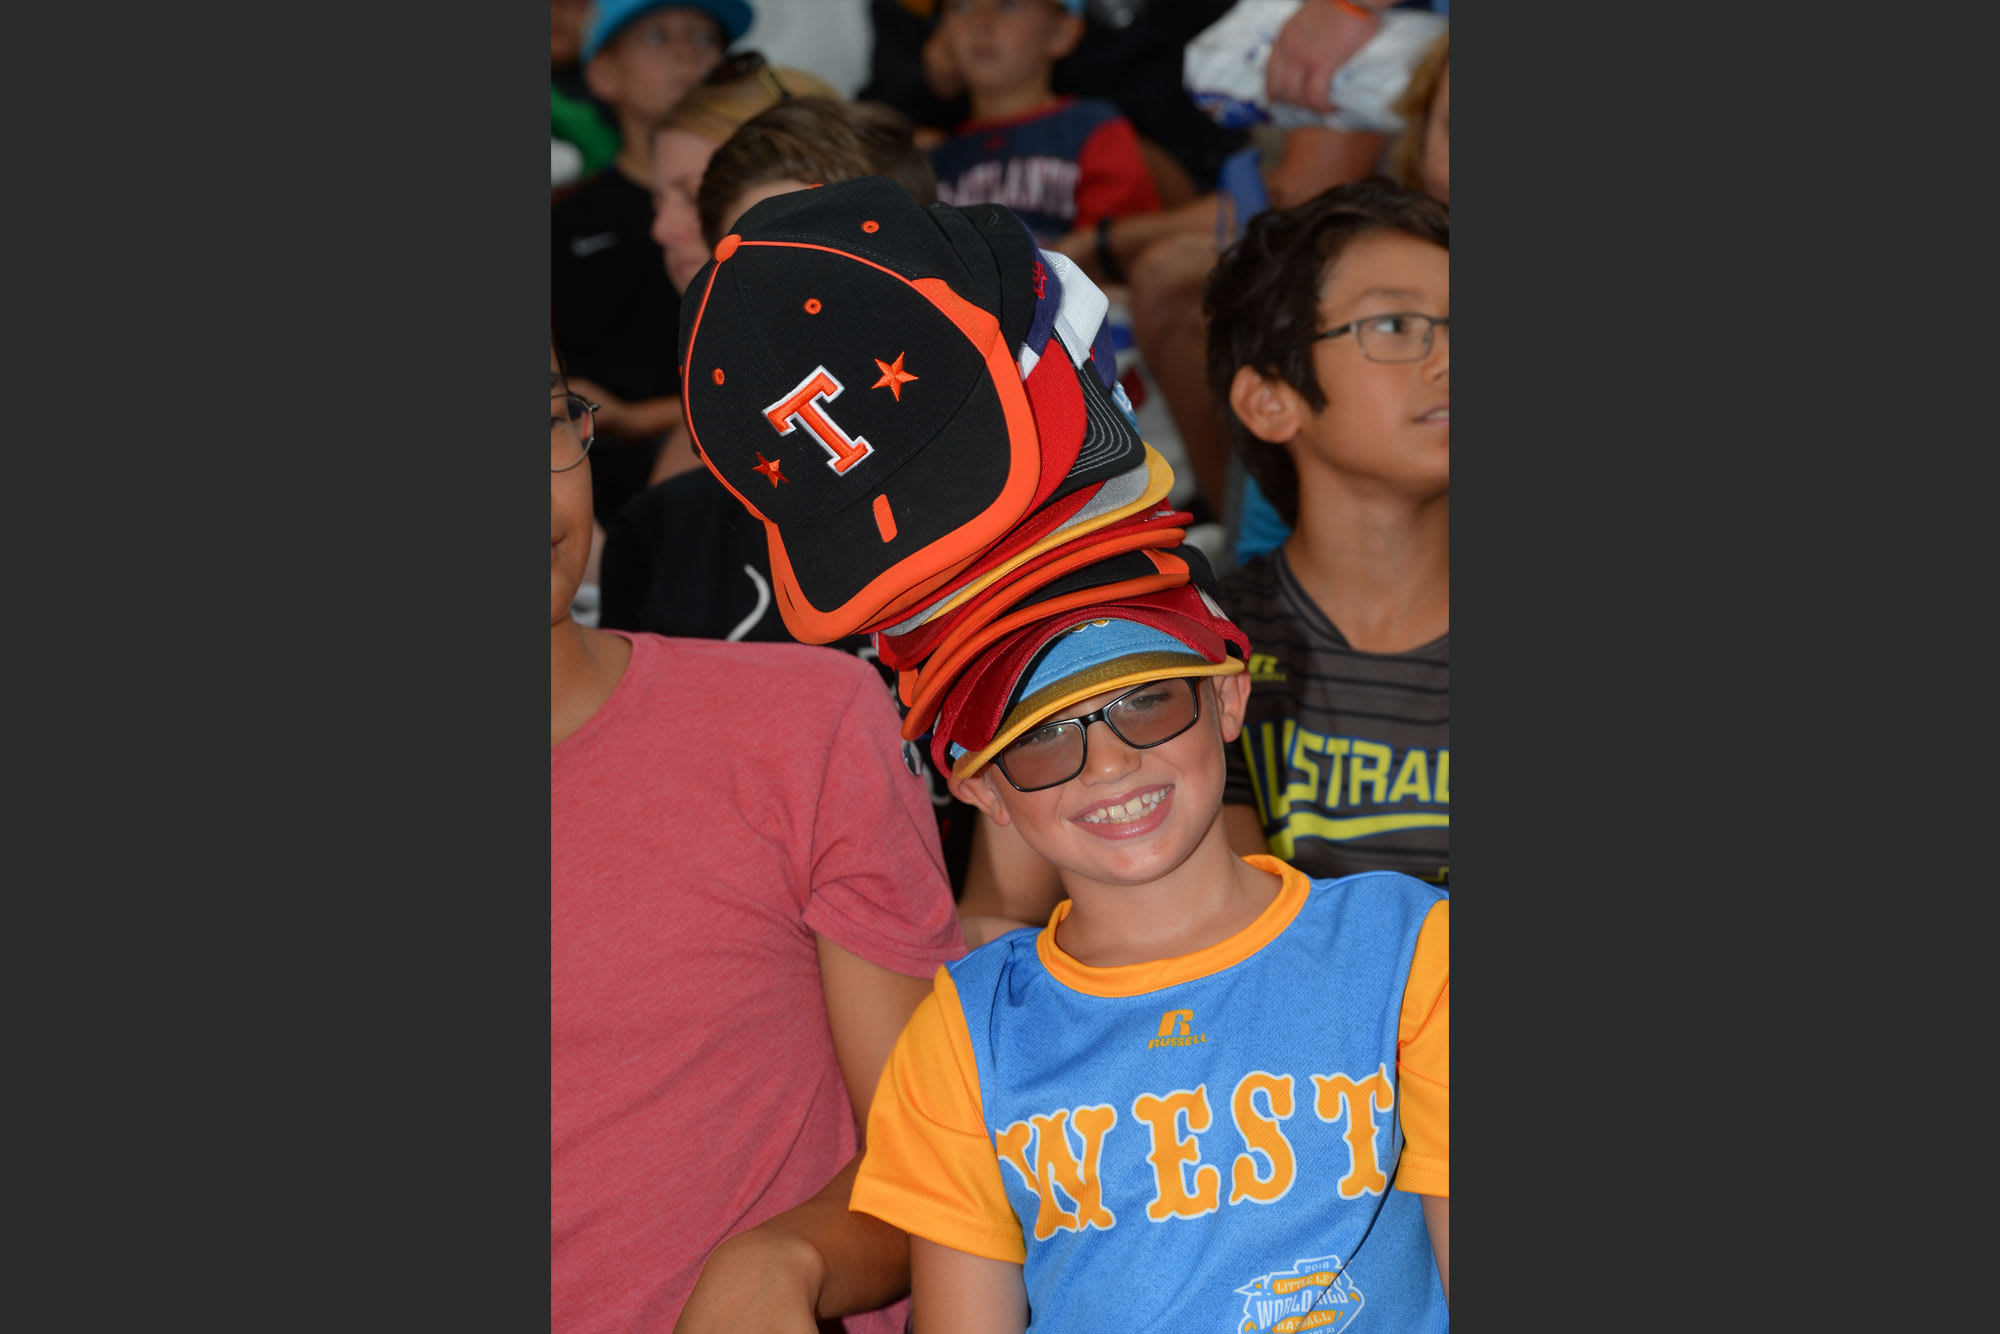 llbws fan with lots of hats on head